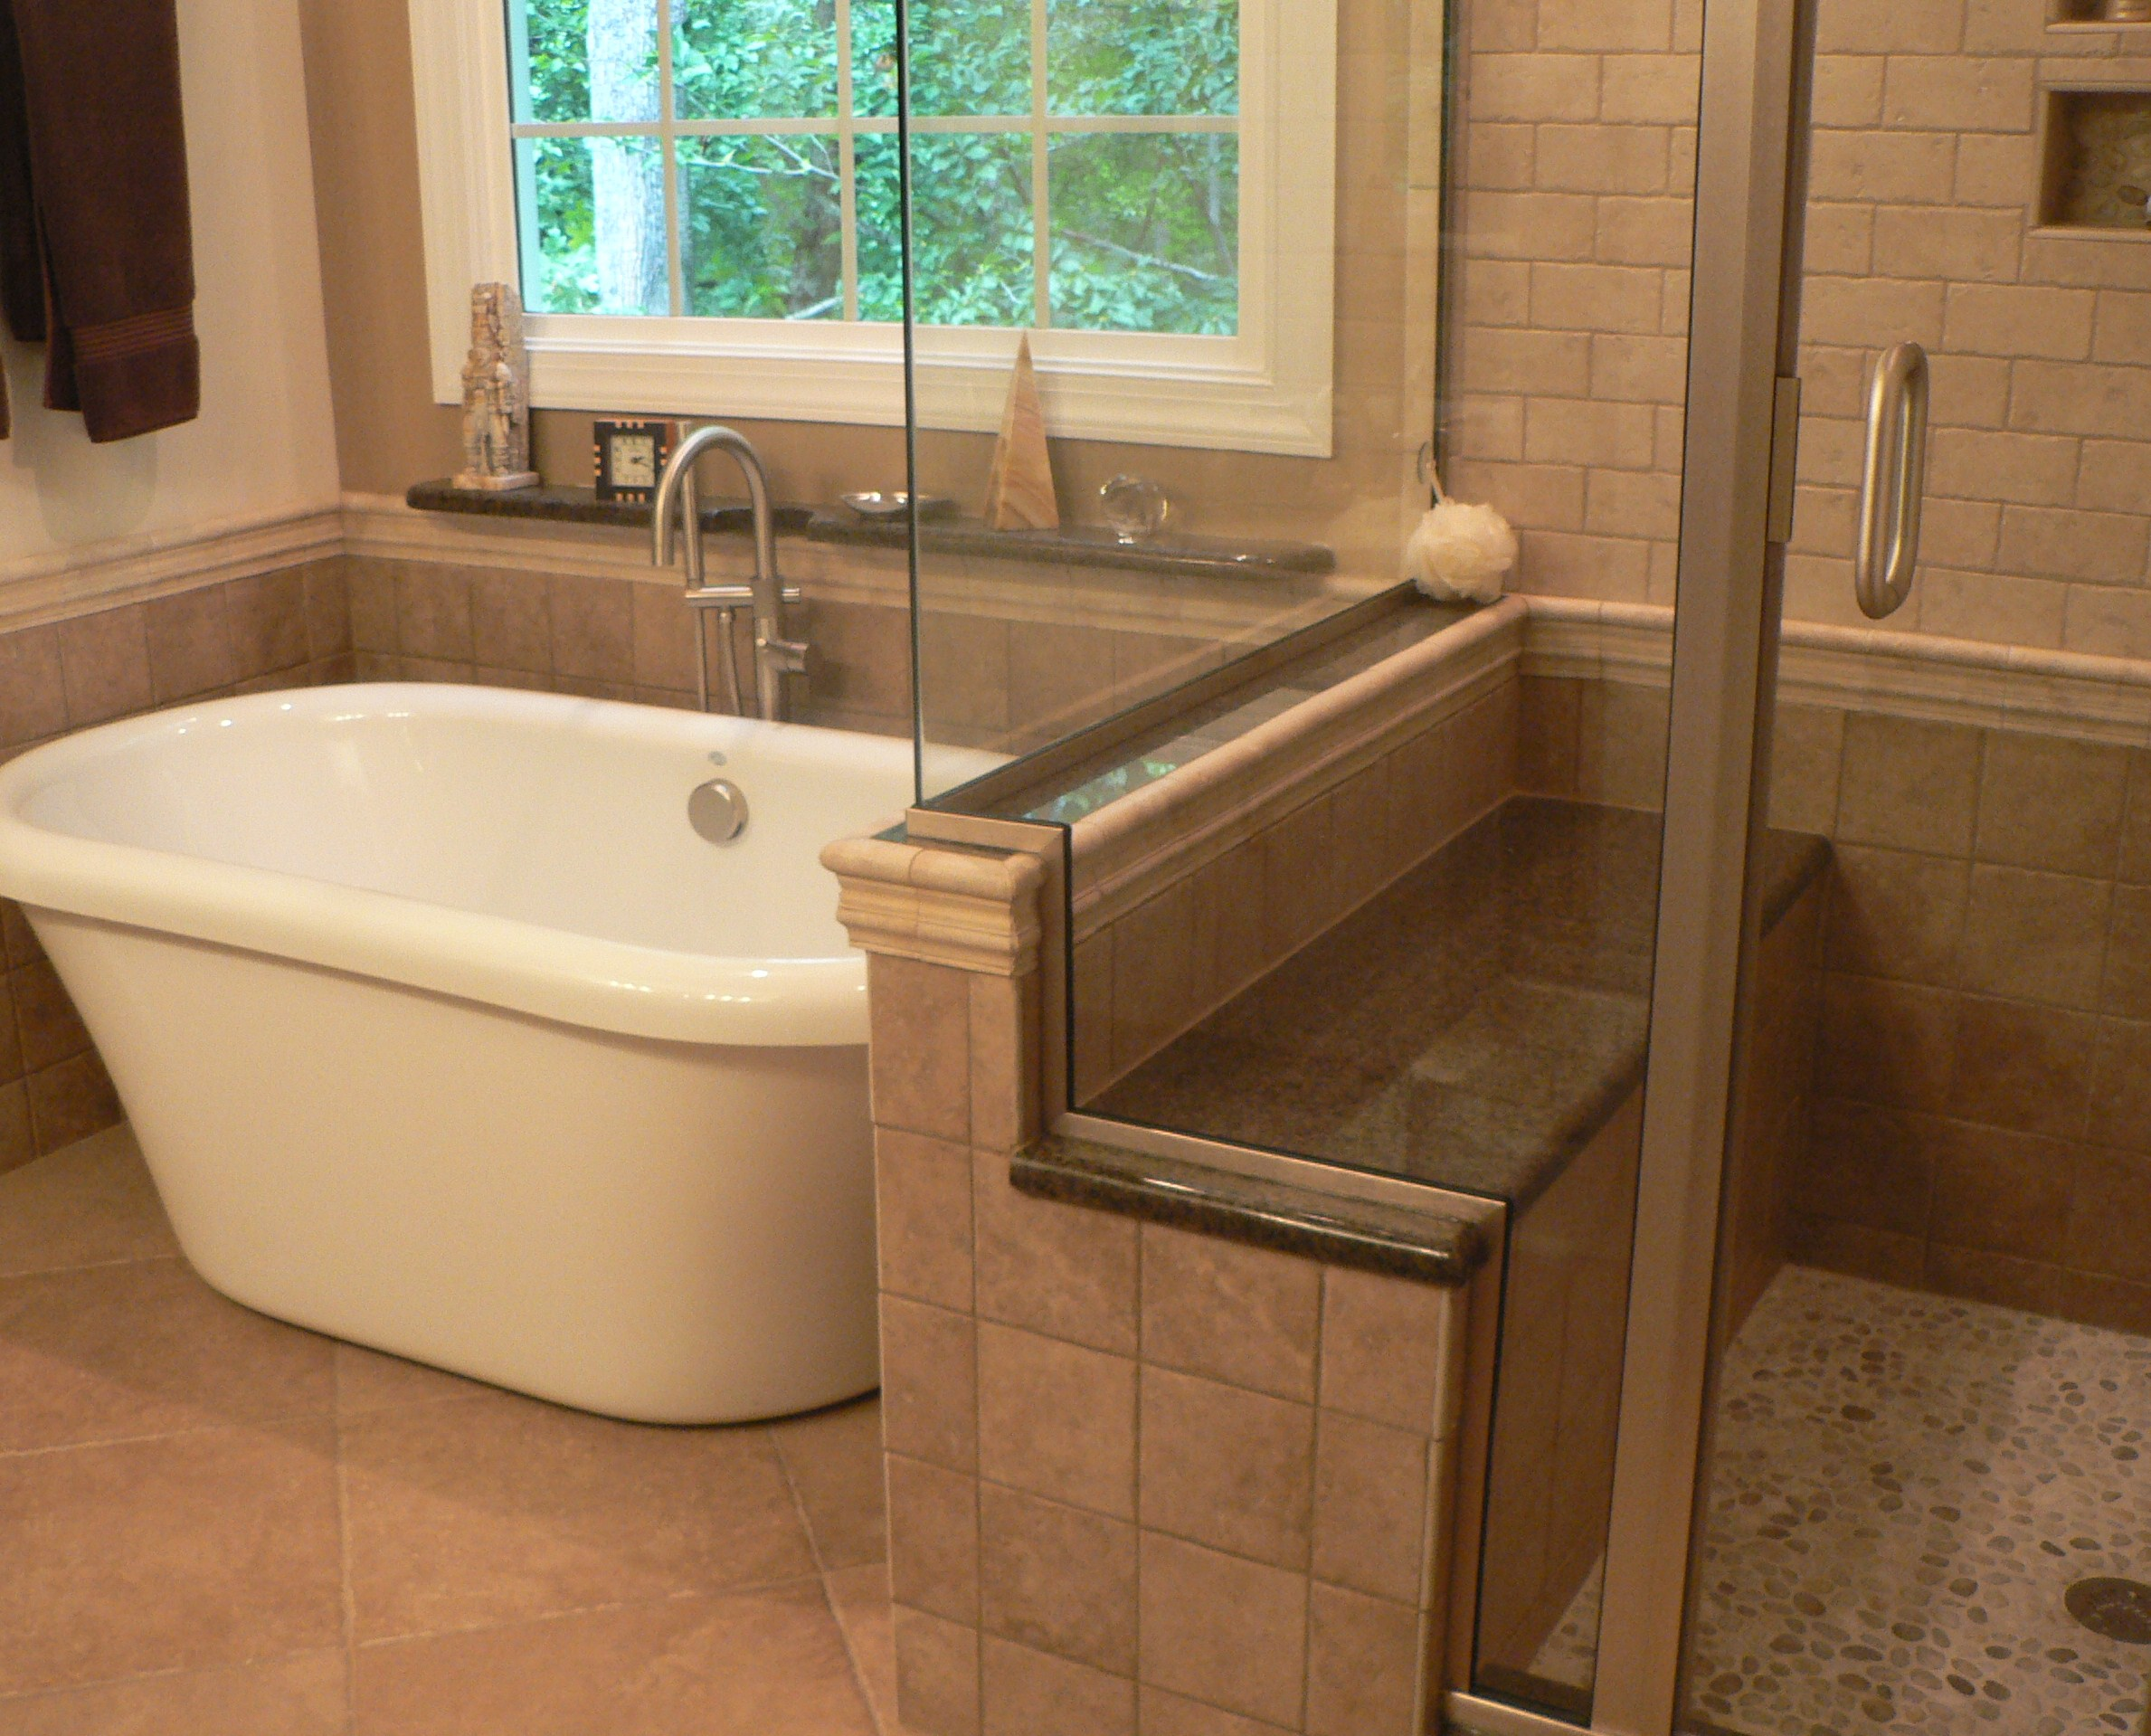 How Much Is It To Remodel A Small Bathroom Cost To Remodel A Small Bathroom  Large And Beautiful Photos .